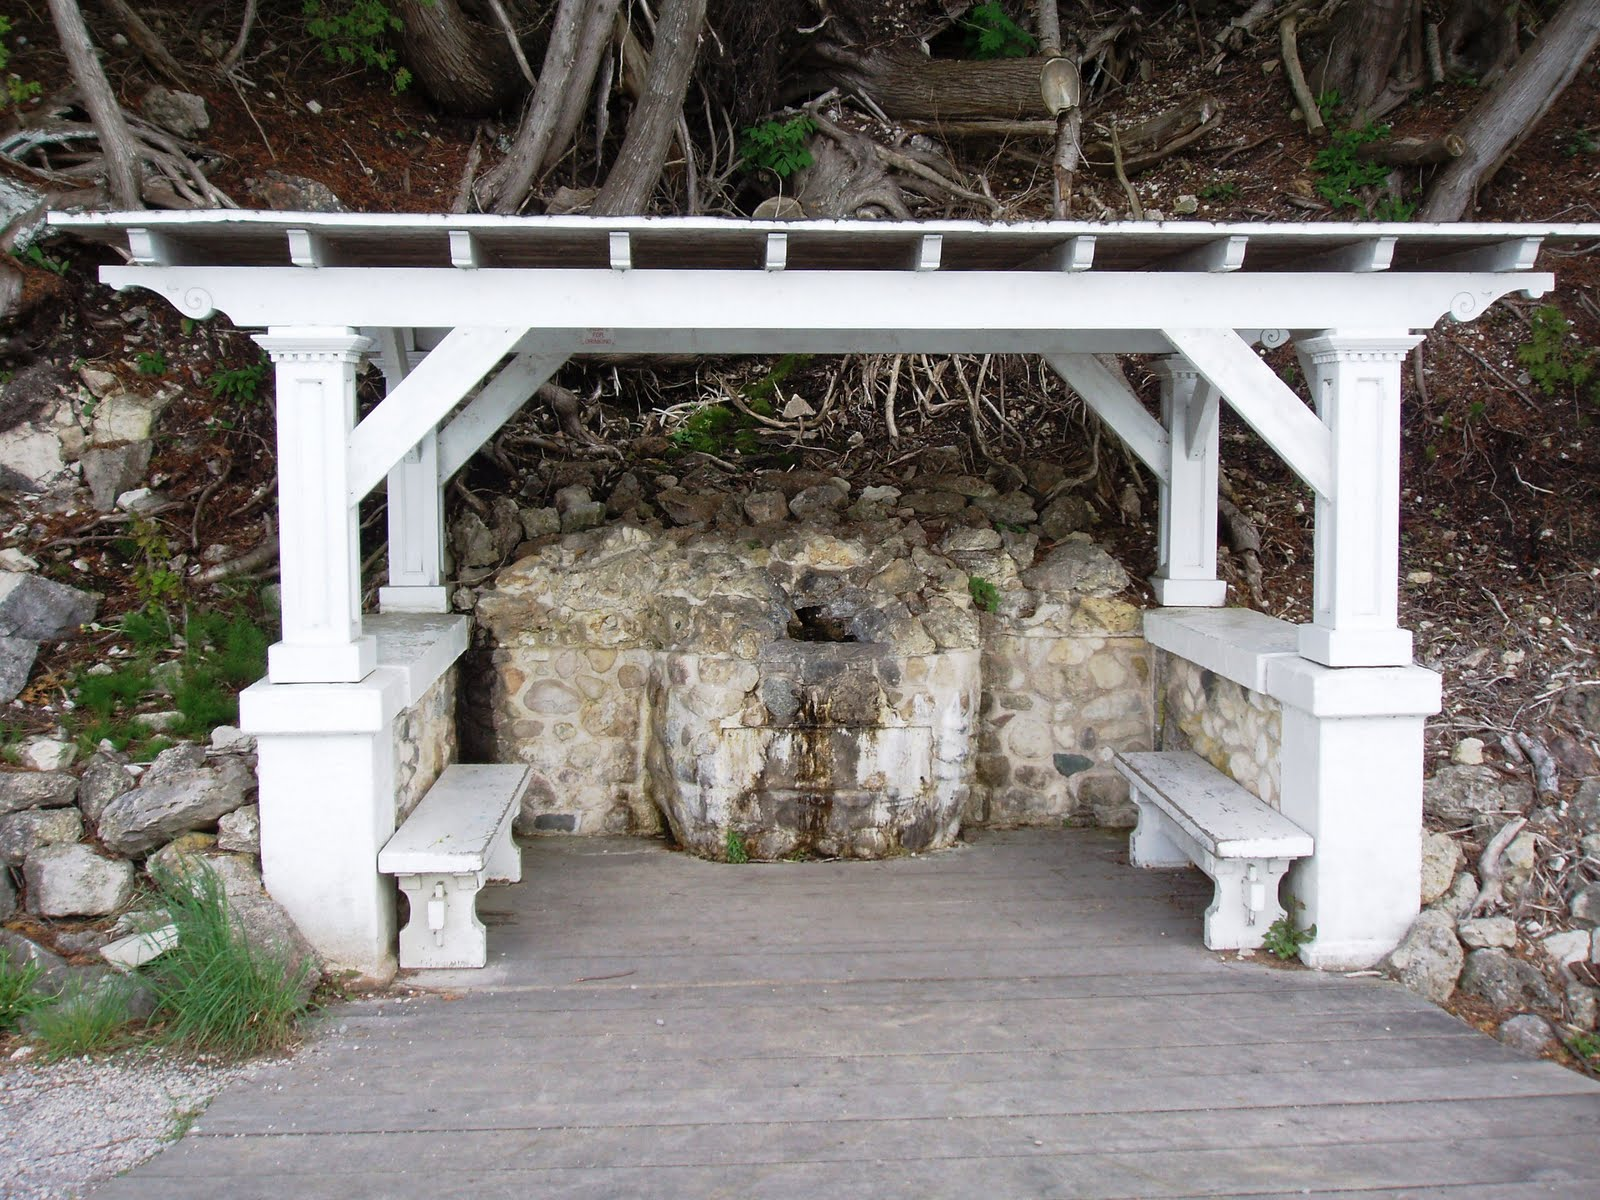 History And Culture By Bicycle: Mackinac Island